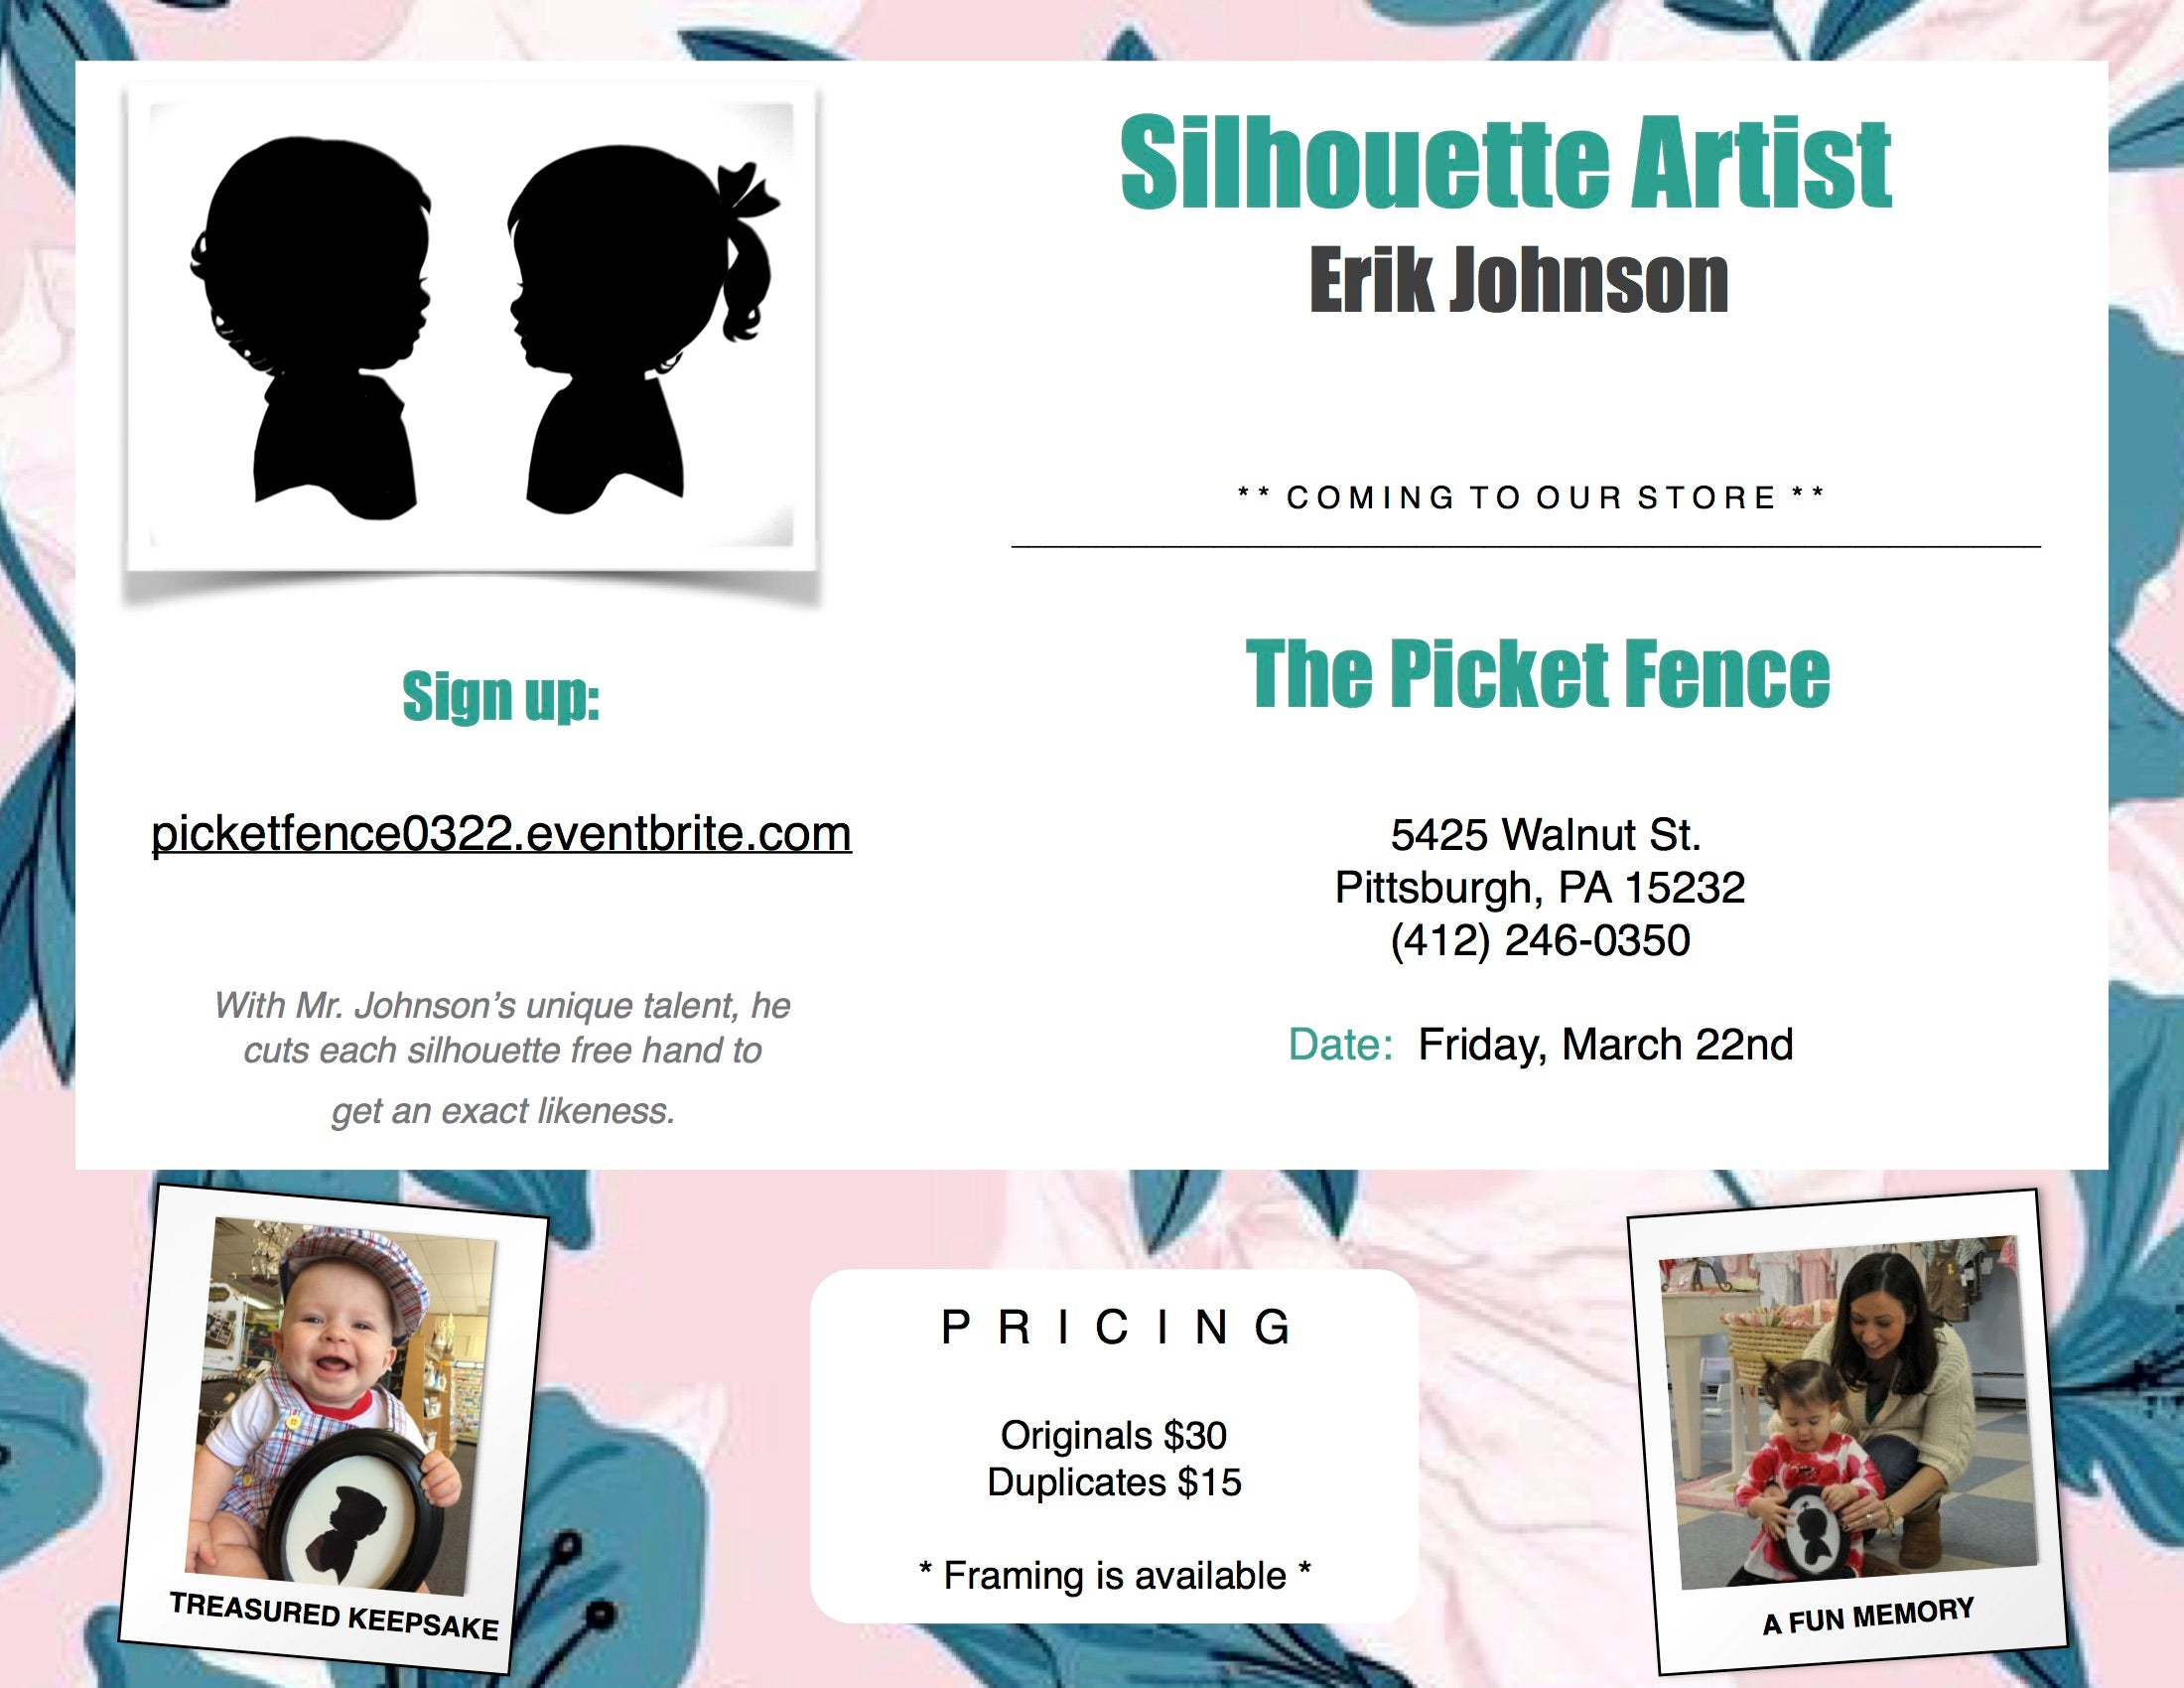 Silhouette Artist Erik Johnson Event